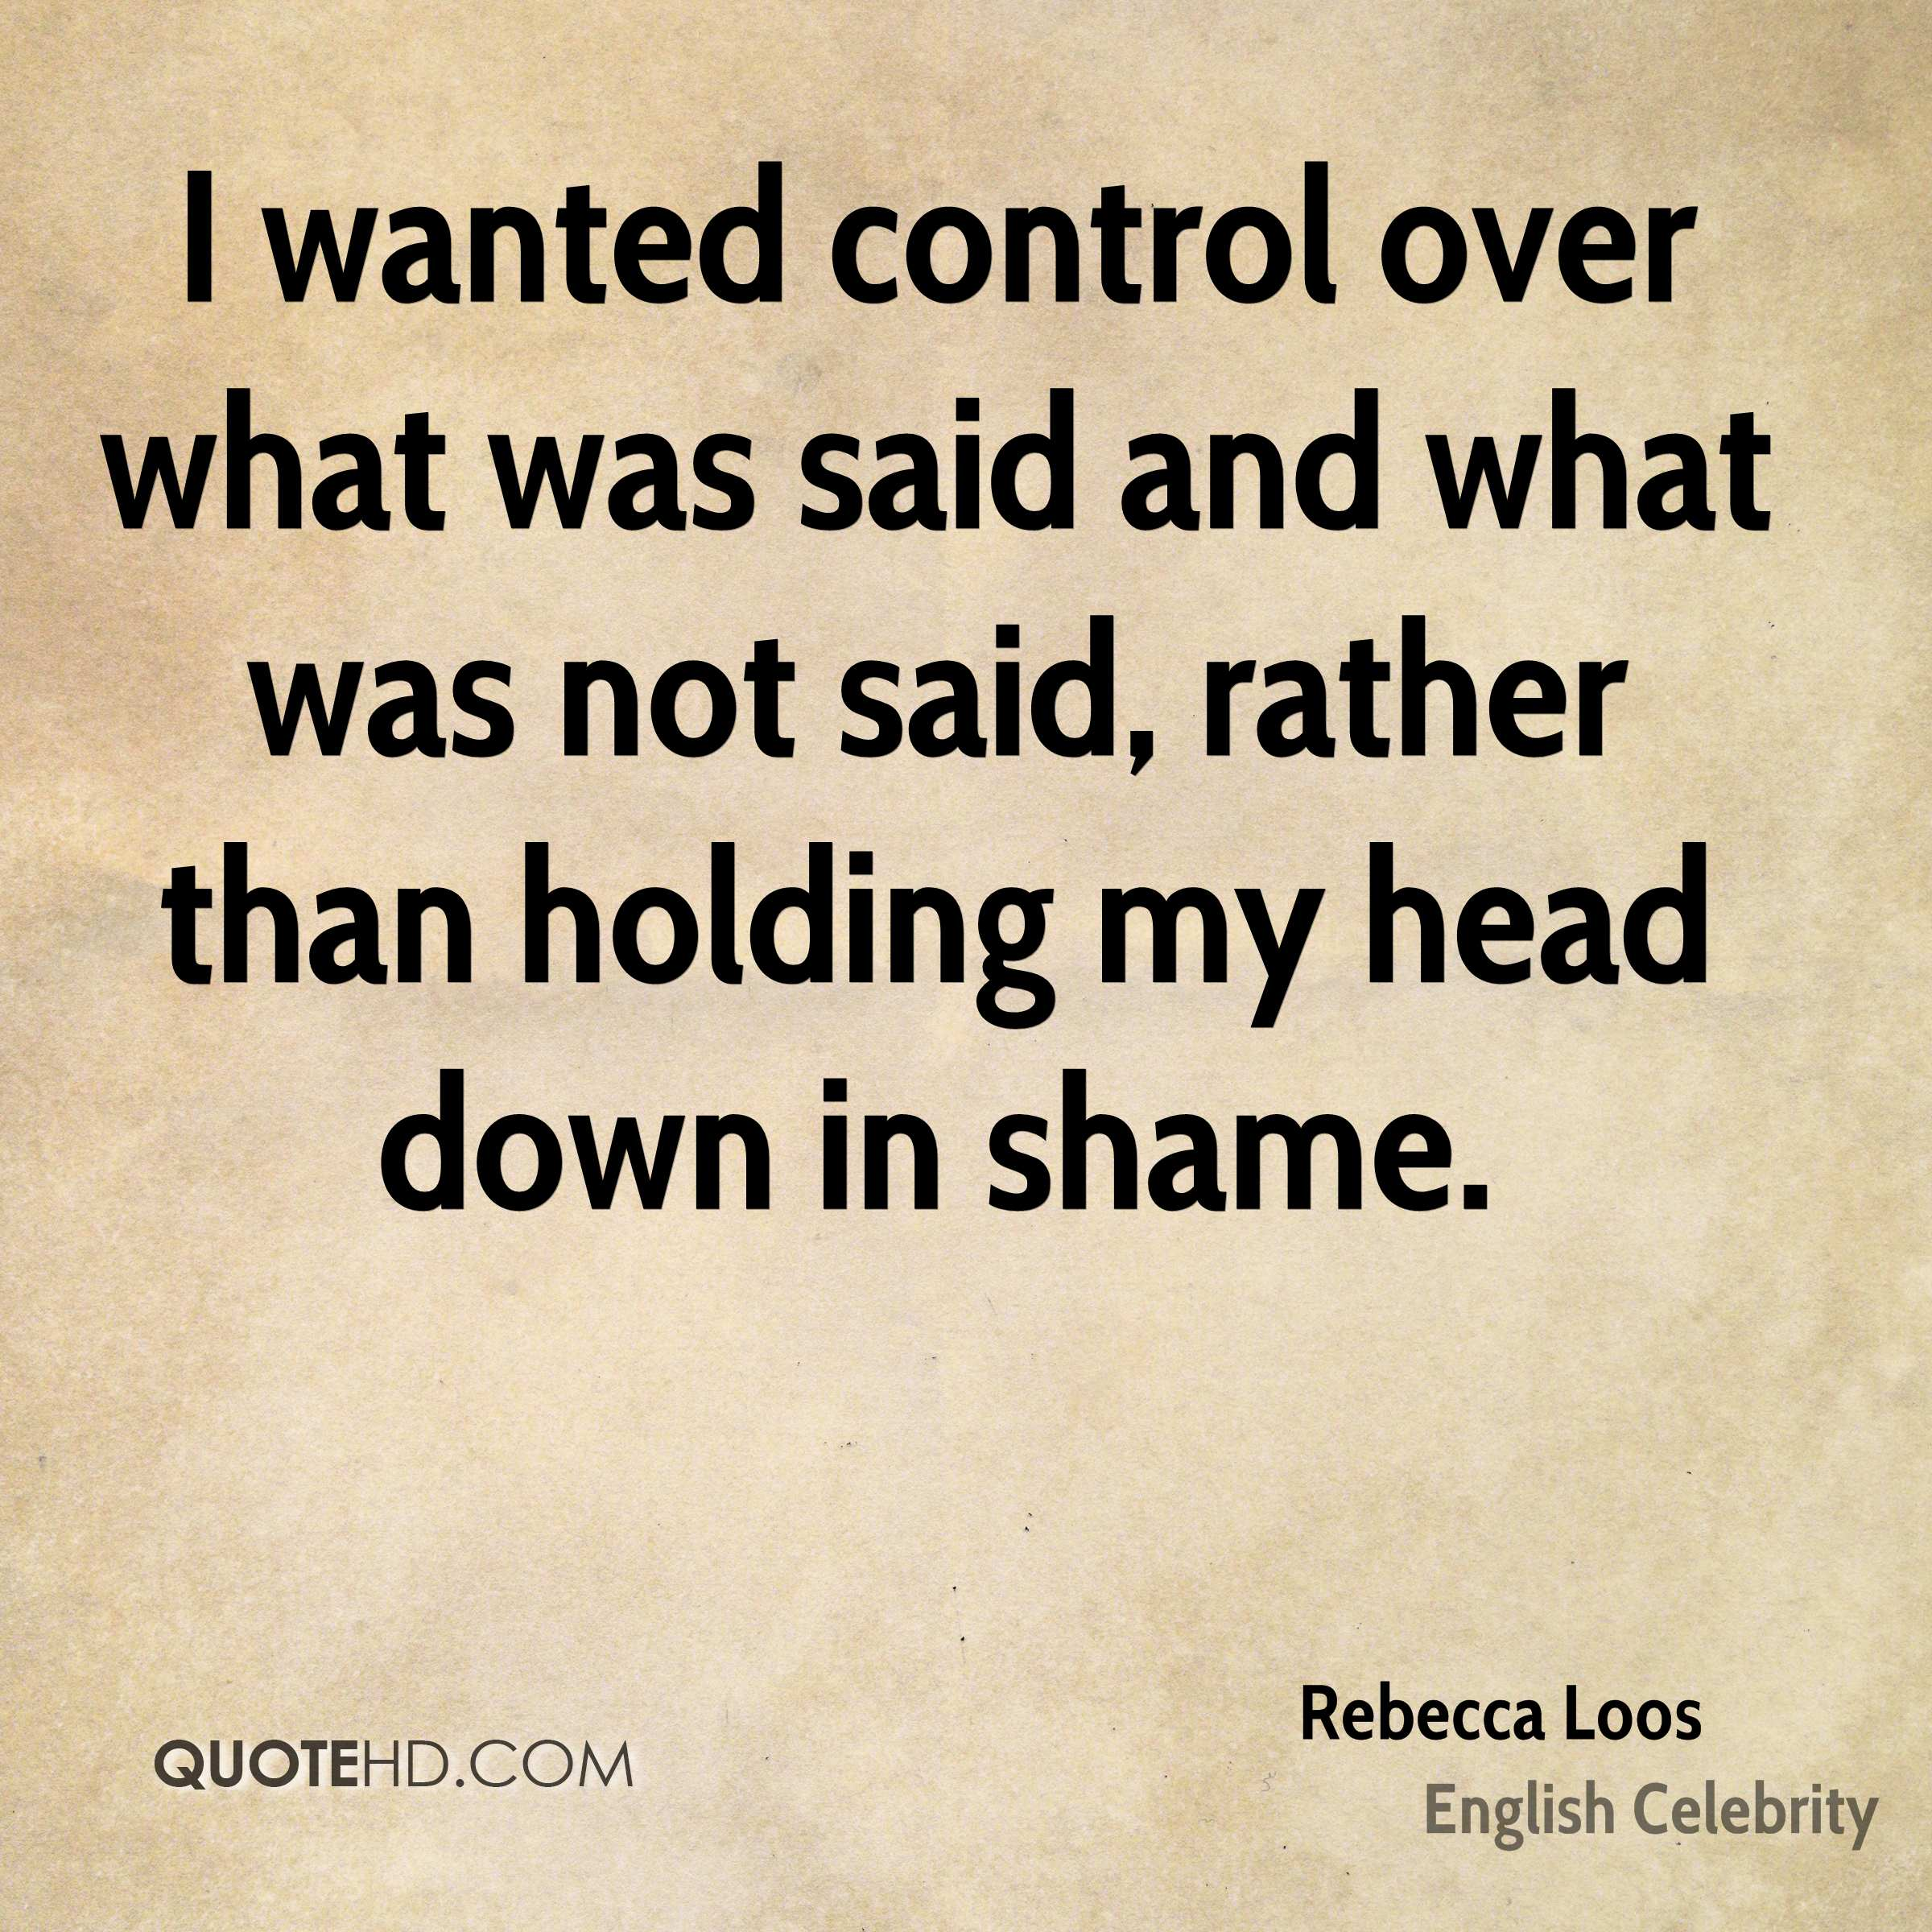 I wanted control over what was said and what was not said, rather than holding my head down in shame.